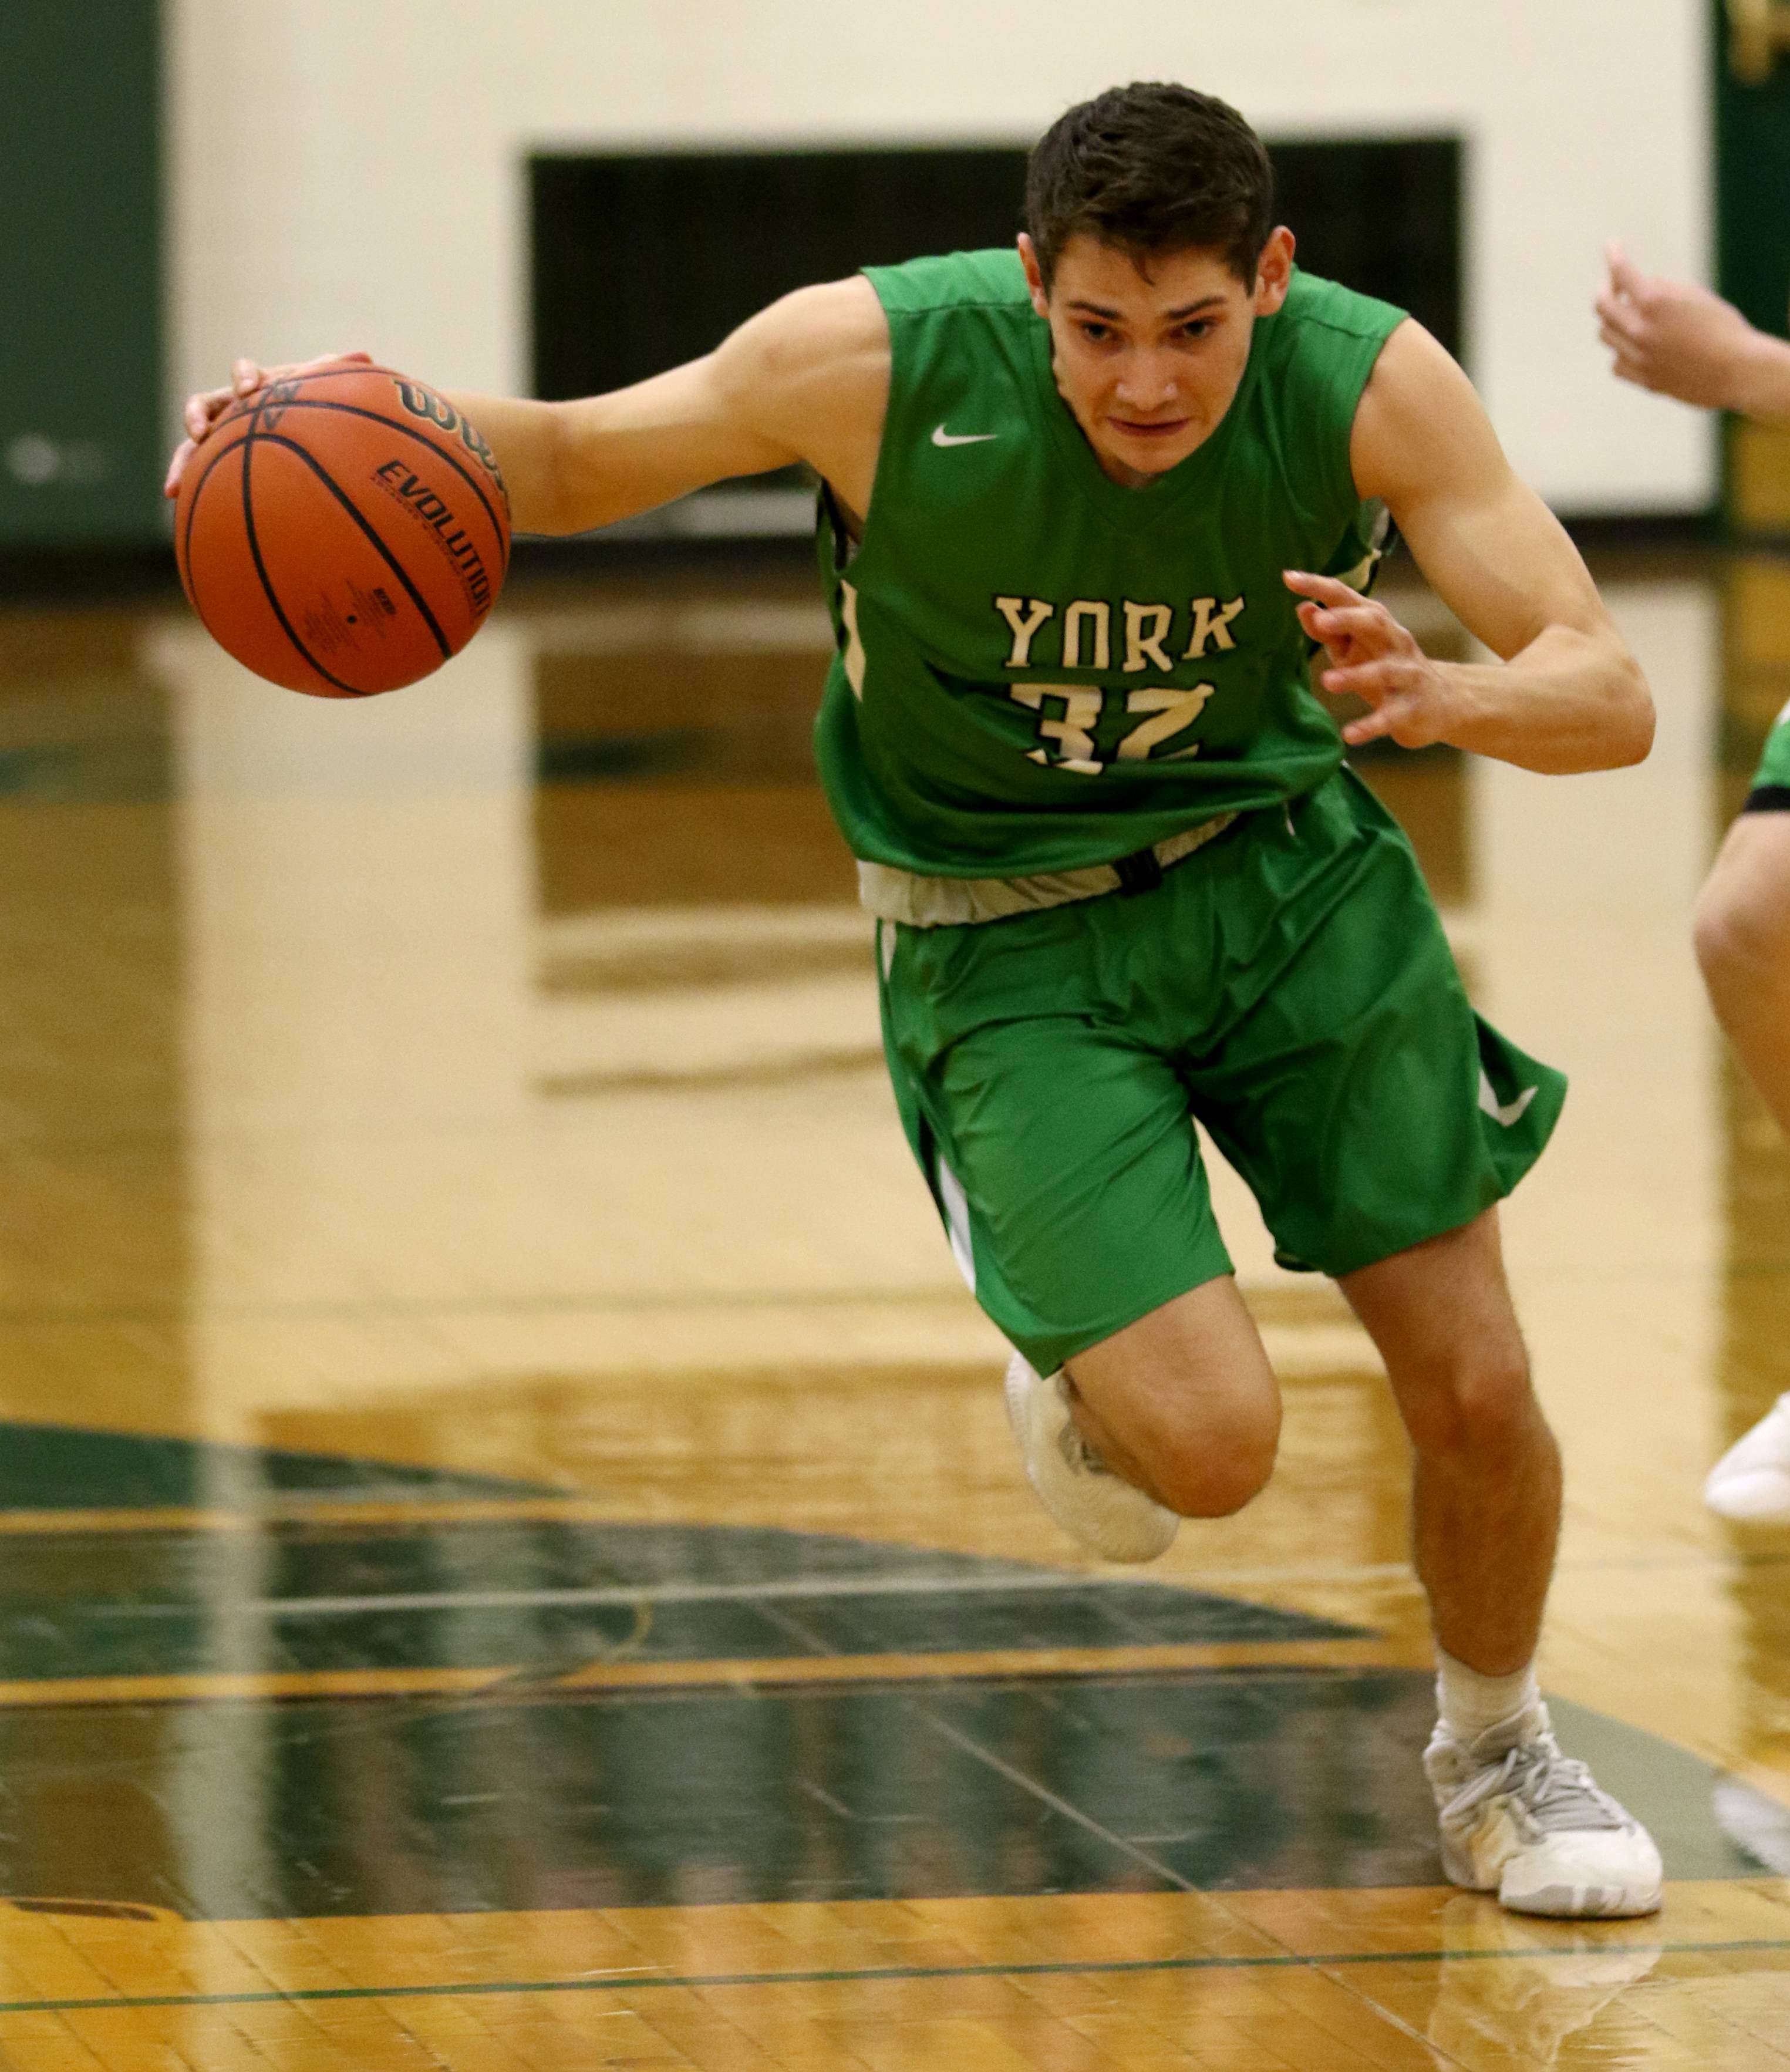 York's Erik Cohn during varsity boys basketball at Fred L. Biester Gymnasium on the campus of Glenbard West Tuesday night.